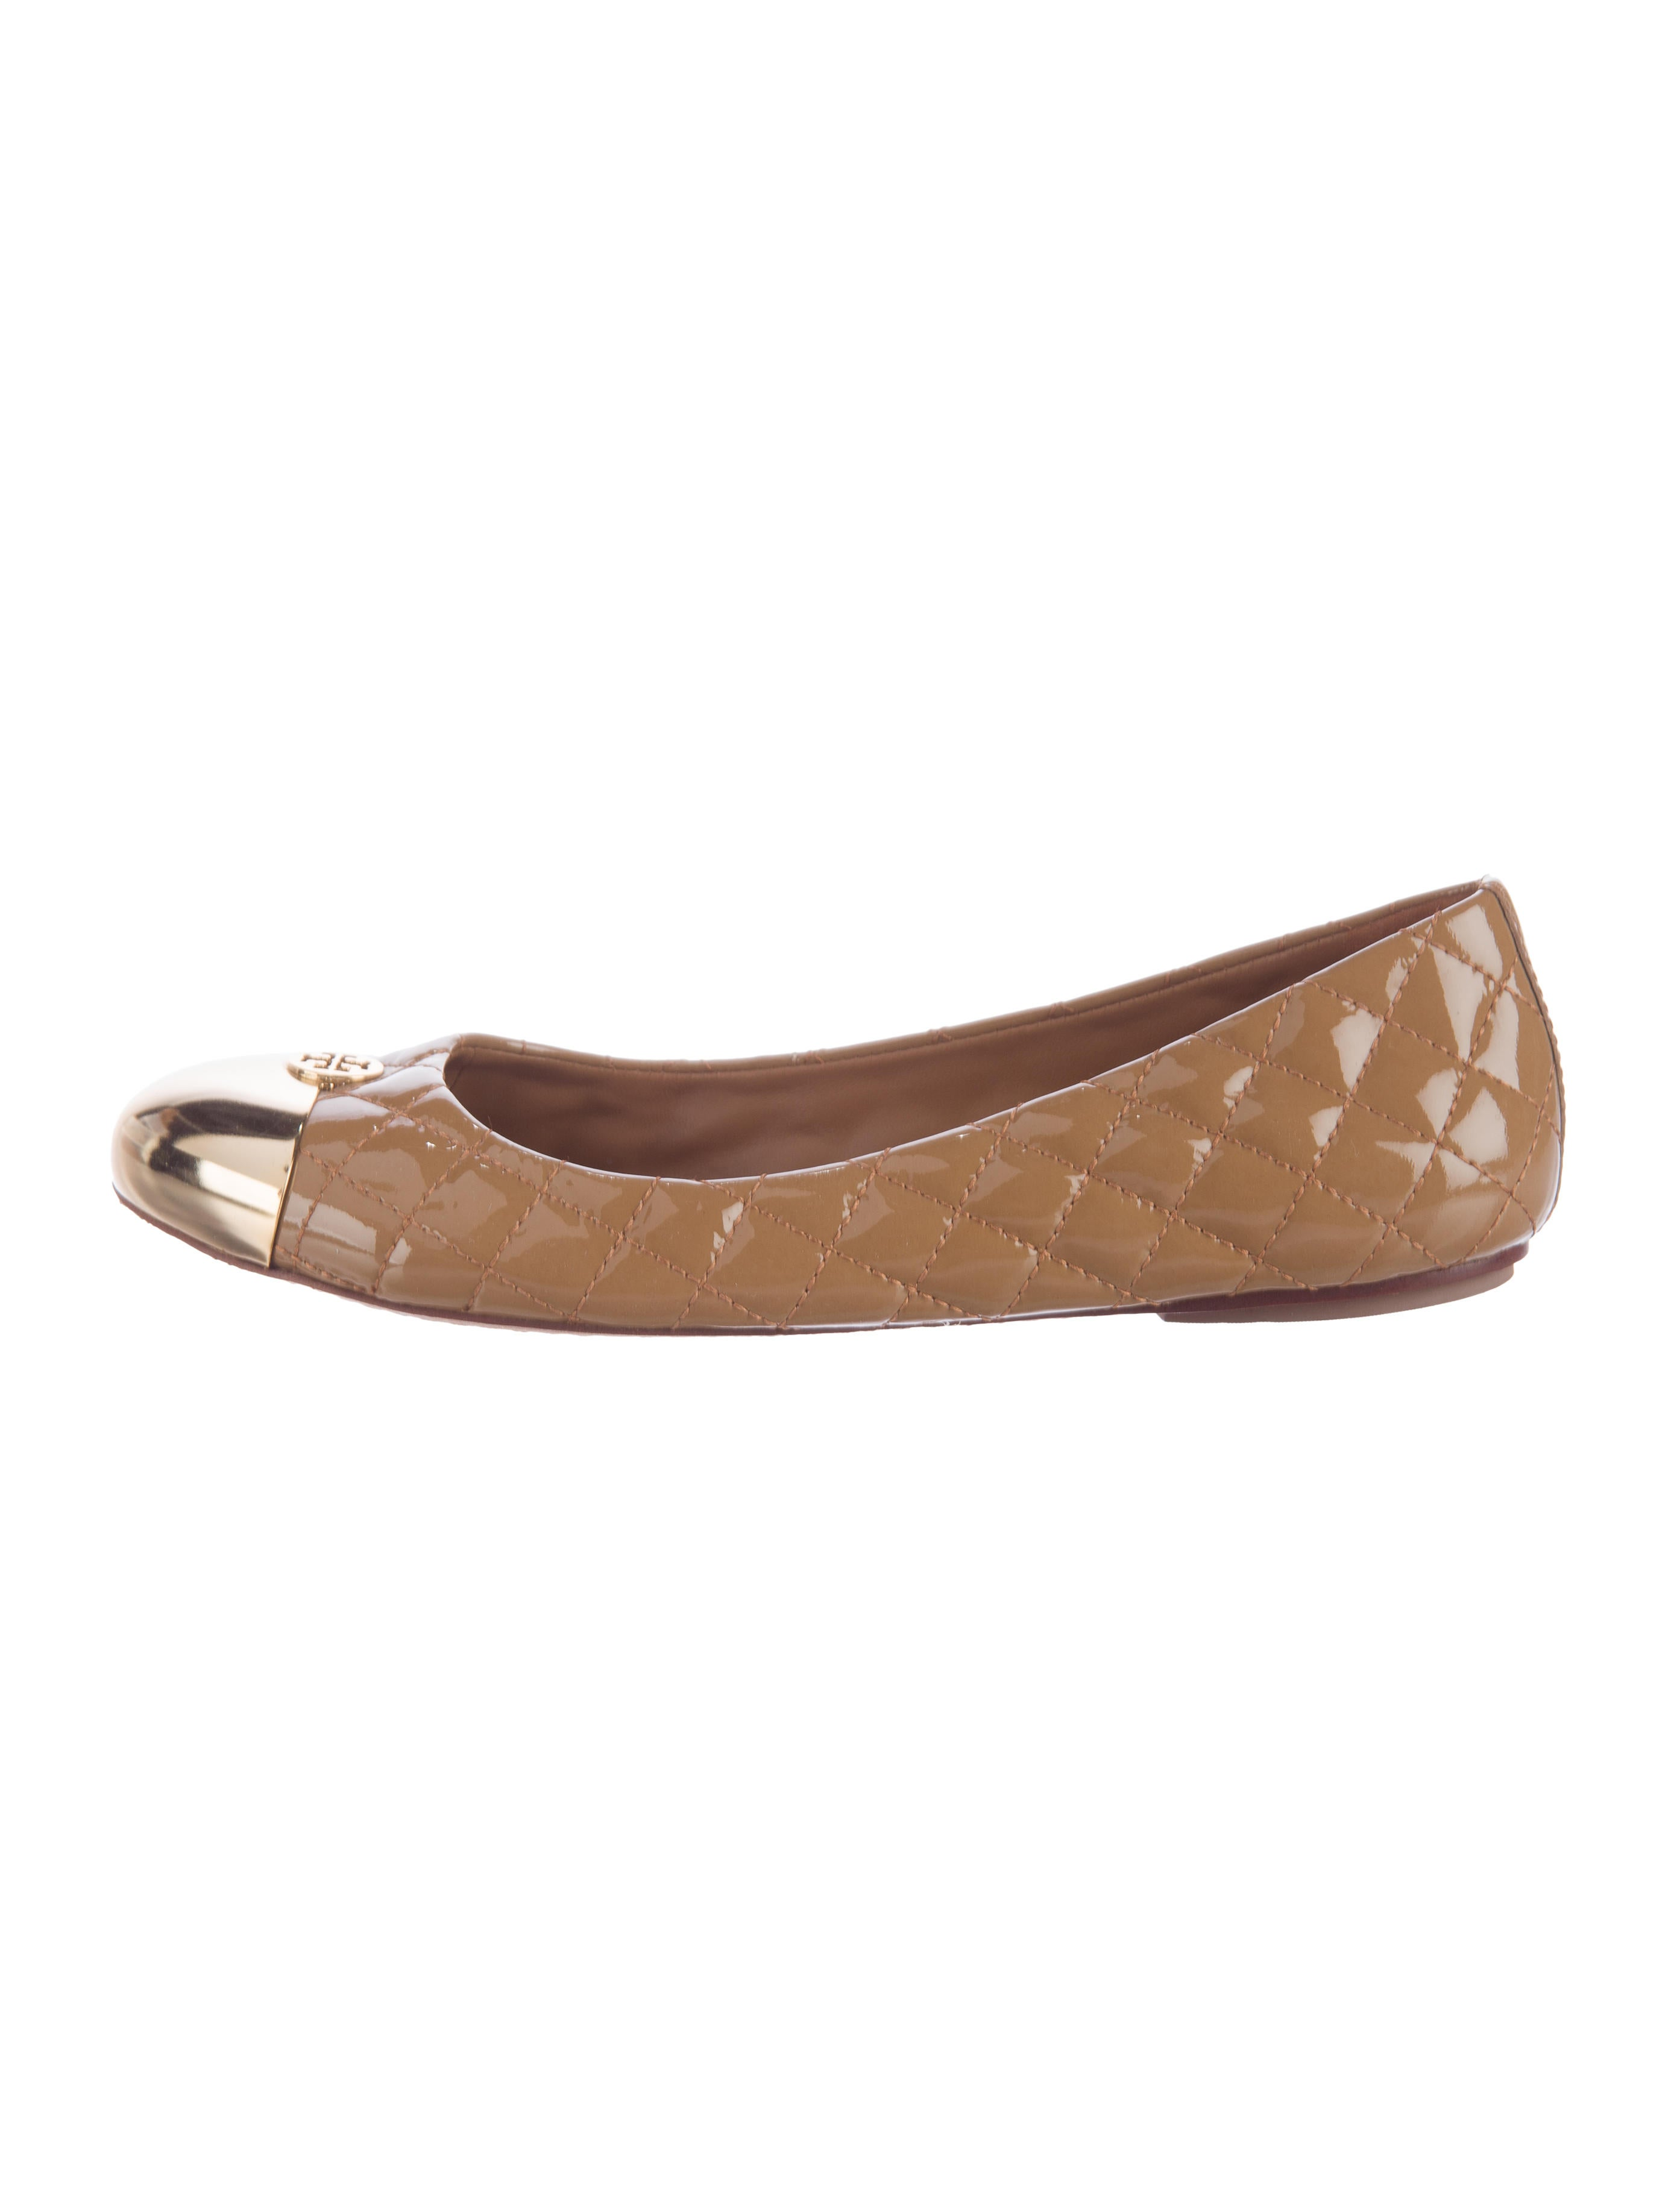 burch patent leather cap toe flats shoes wto91499